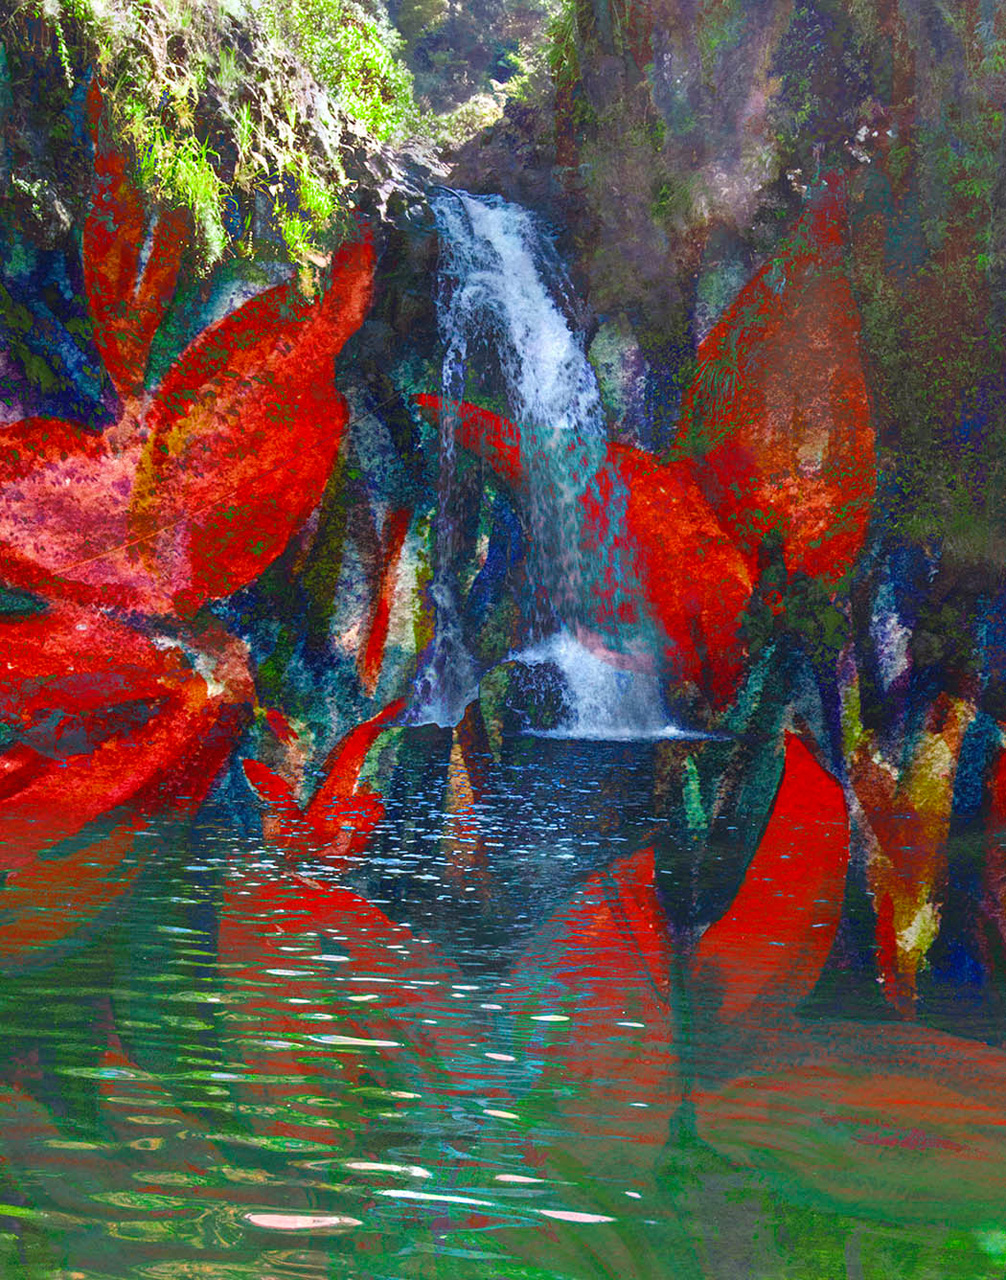 Letting Words Shed by Marisela Bracho with waterfall and flower images